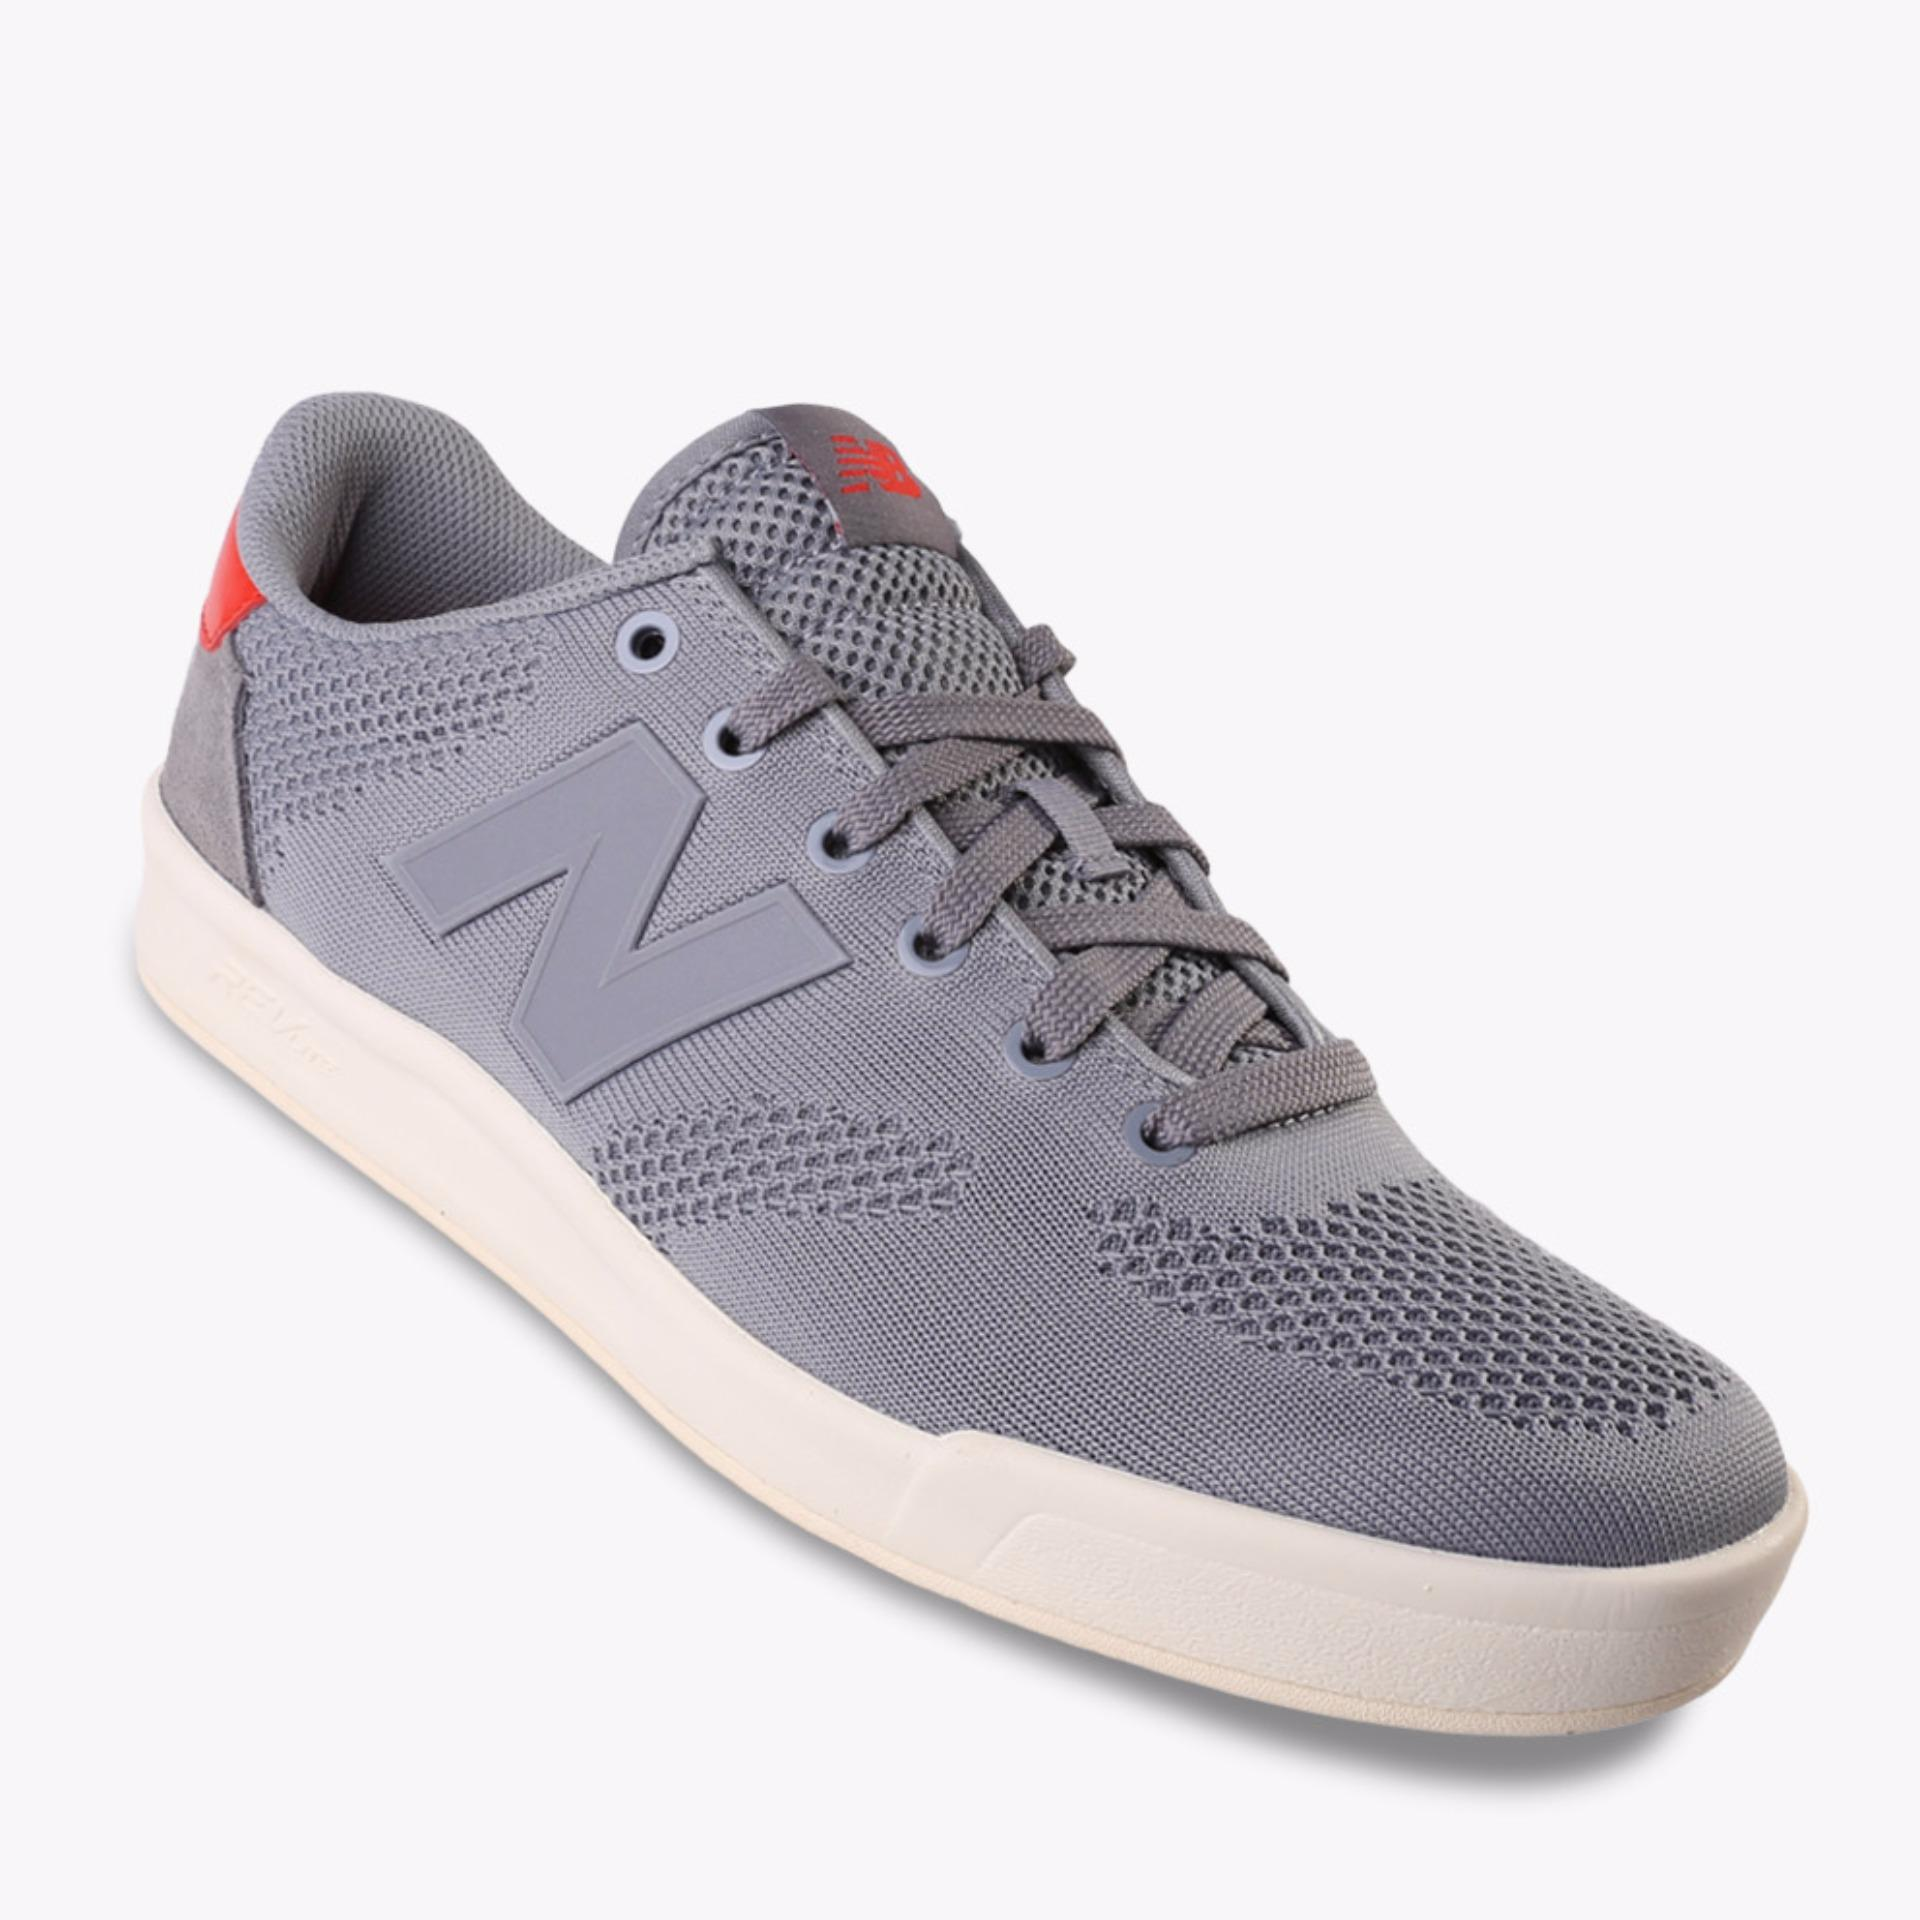 Beli New Balance 300 Re Engineered Men S Lifestyle Shoes Abu Abu Cicilan